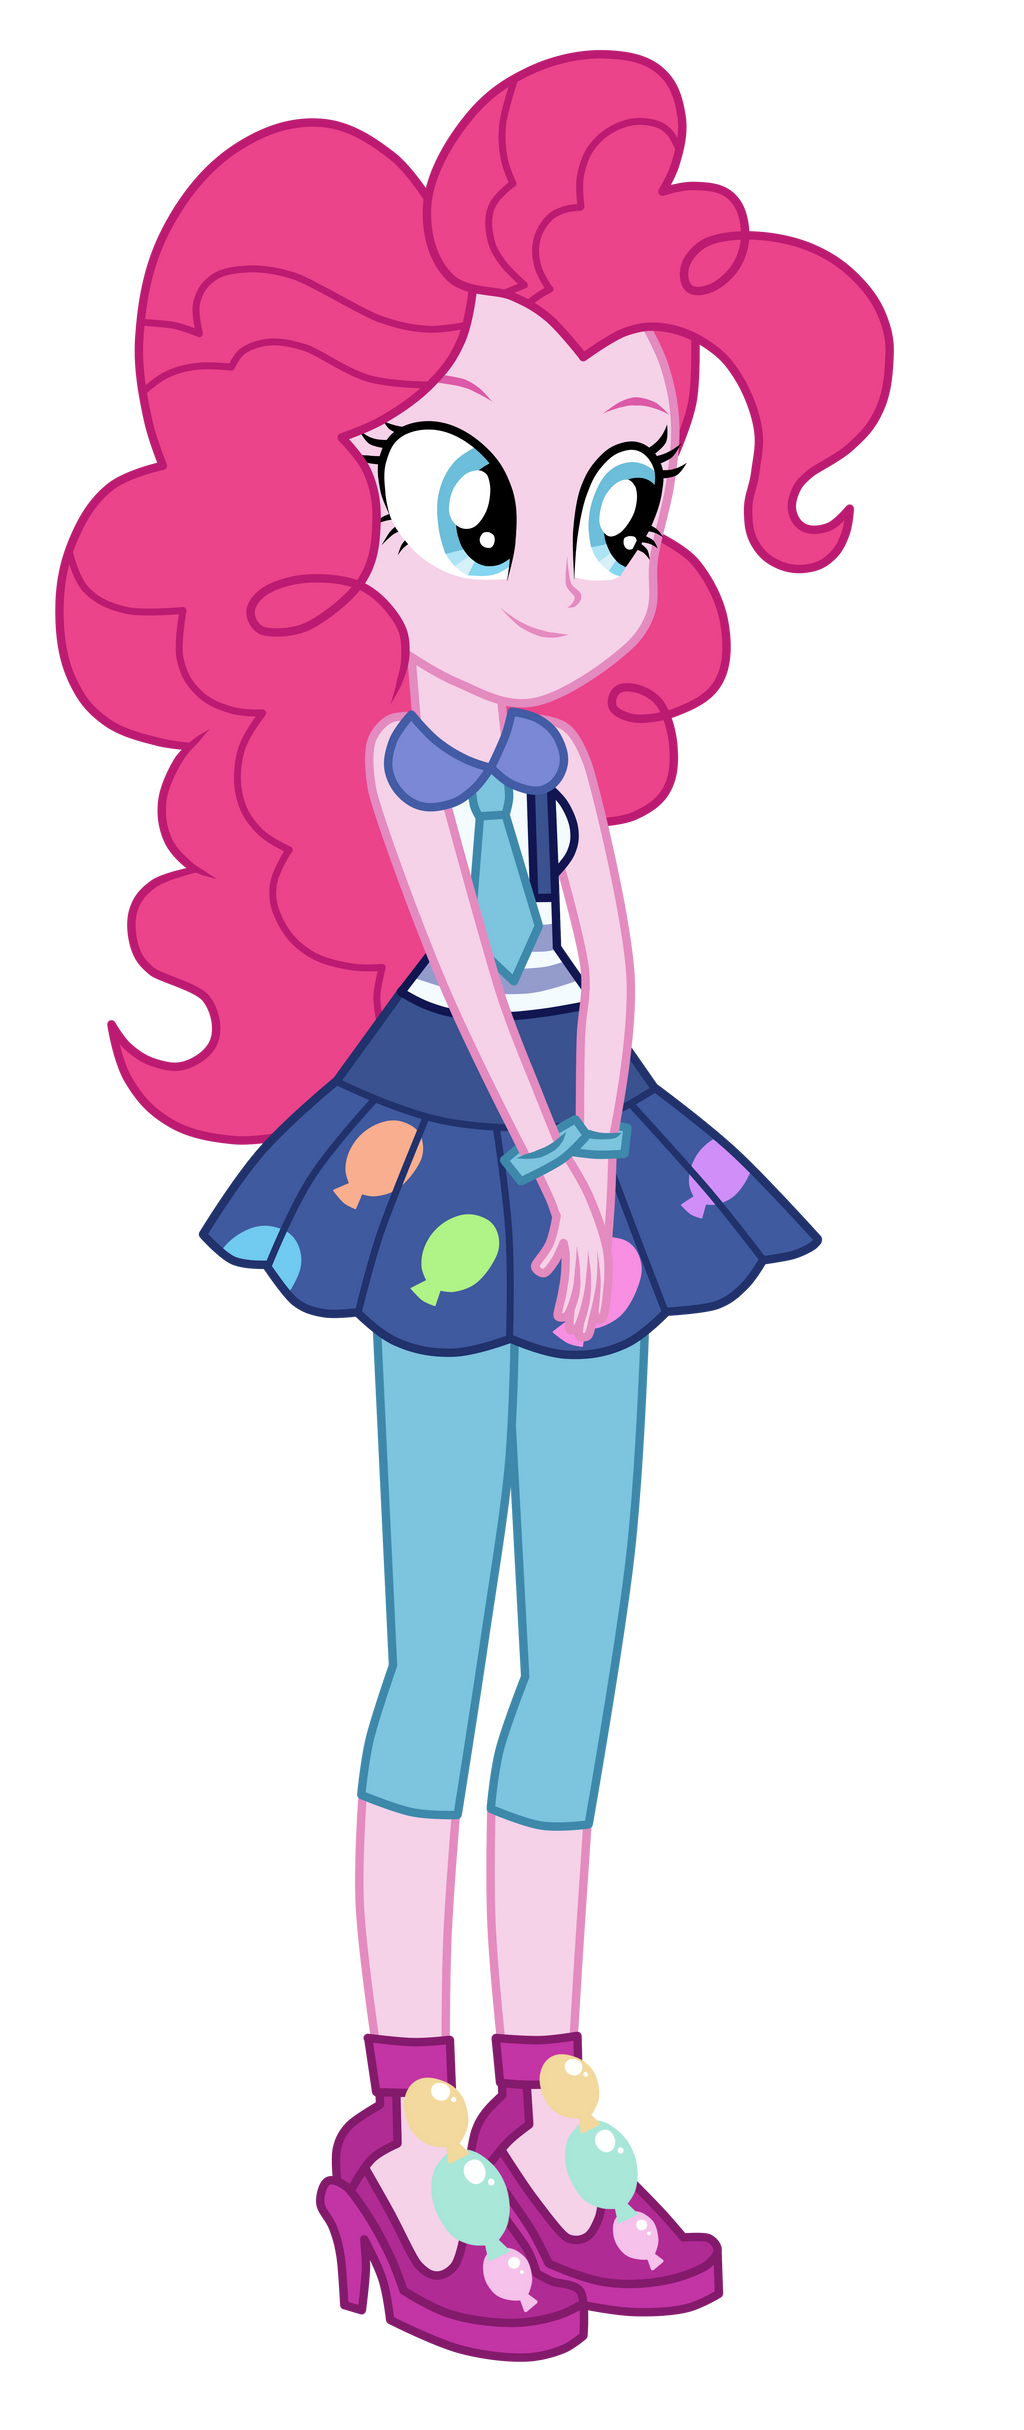 My Little Pony Equestria Girls Western Animation  TV